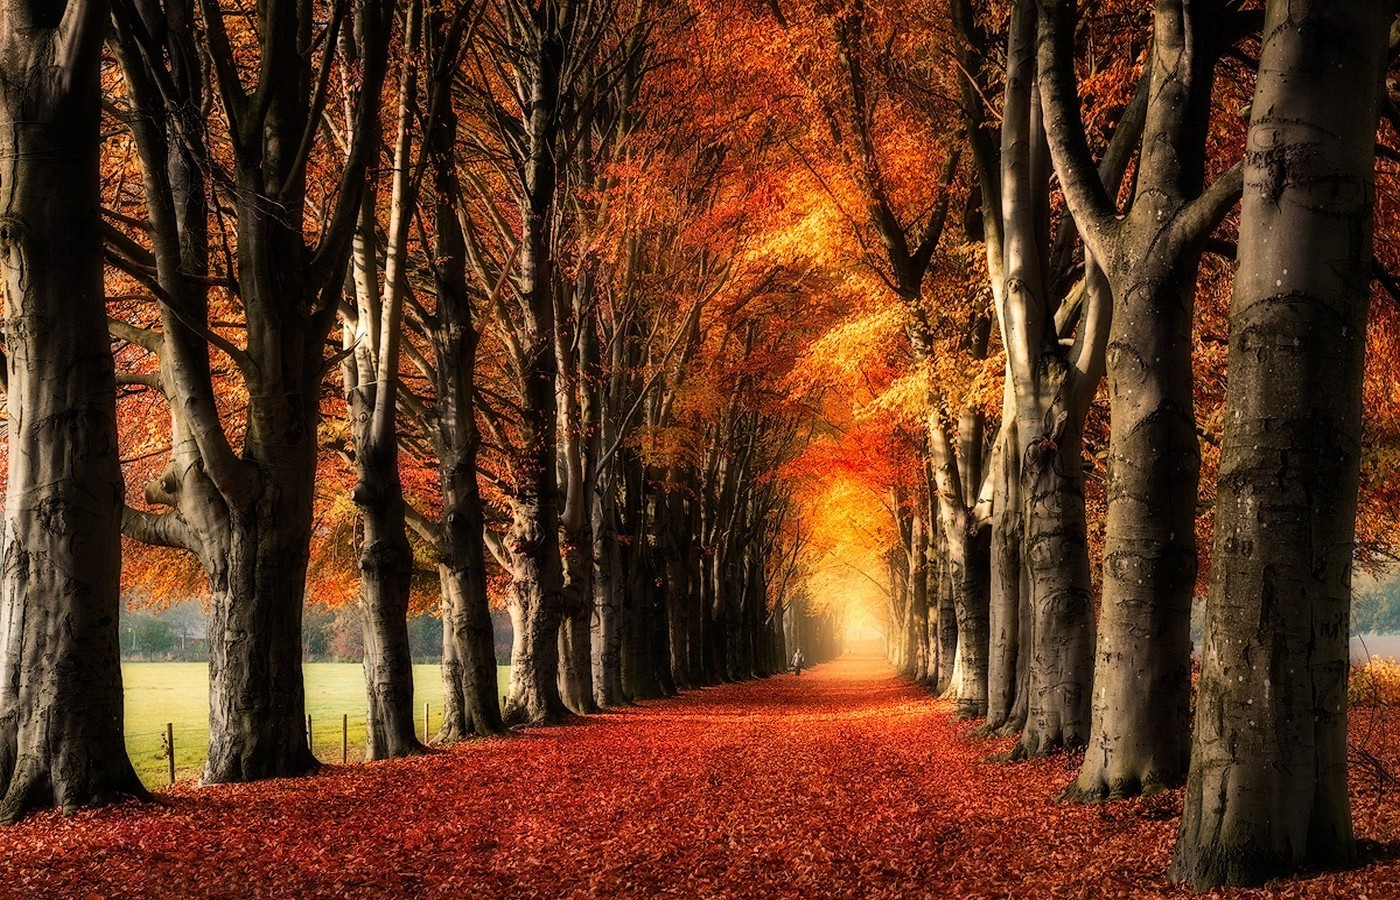 Wallpaper Anime Fall 2016 Nature Landscape Trees Fall Yellow Red Leaves Path